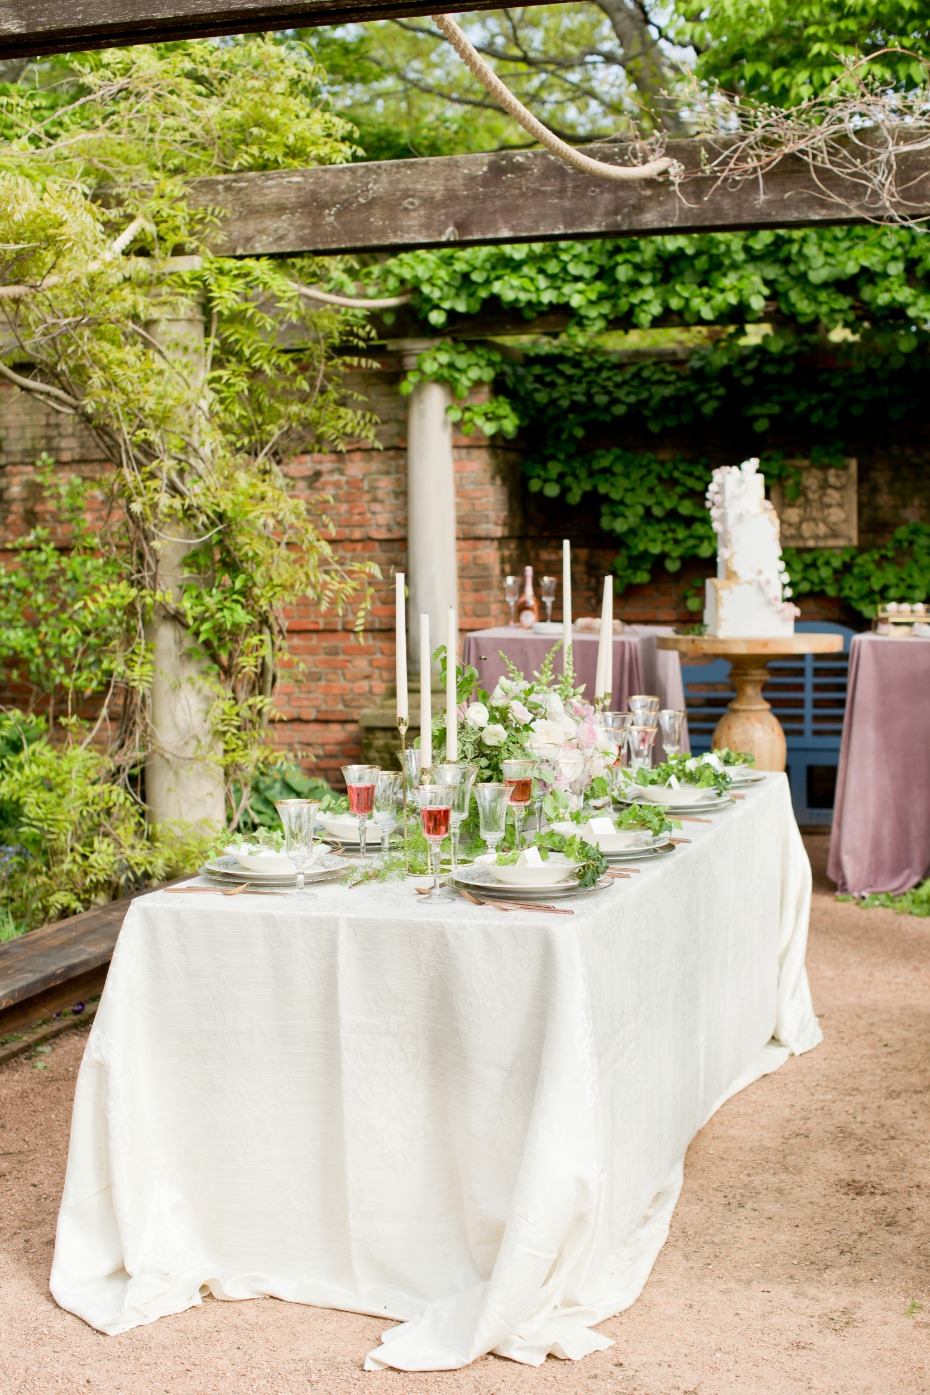 Garden wedding reception ideas